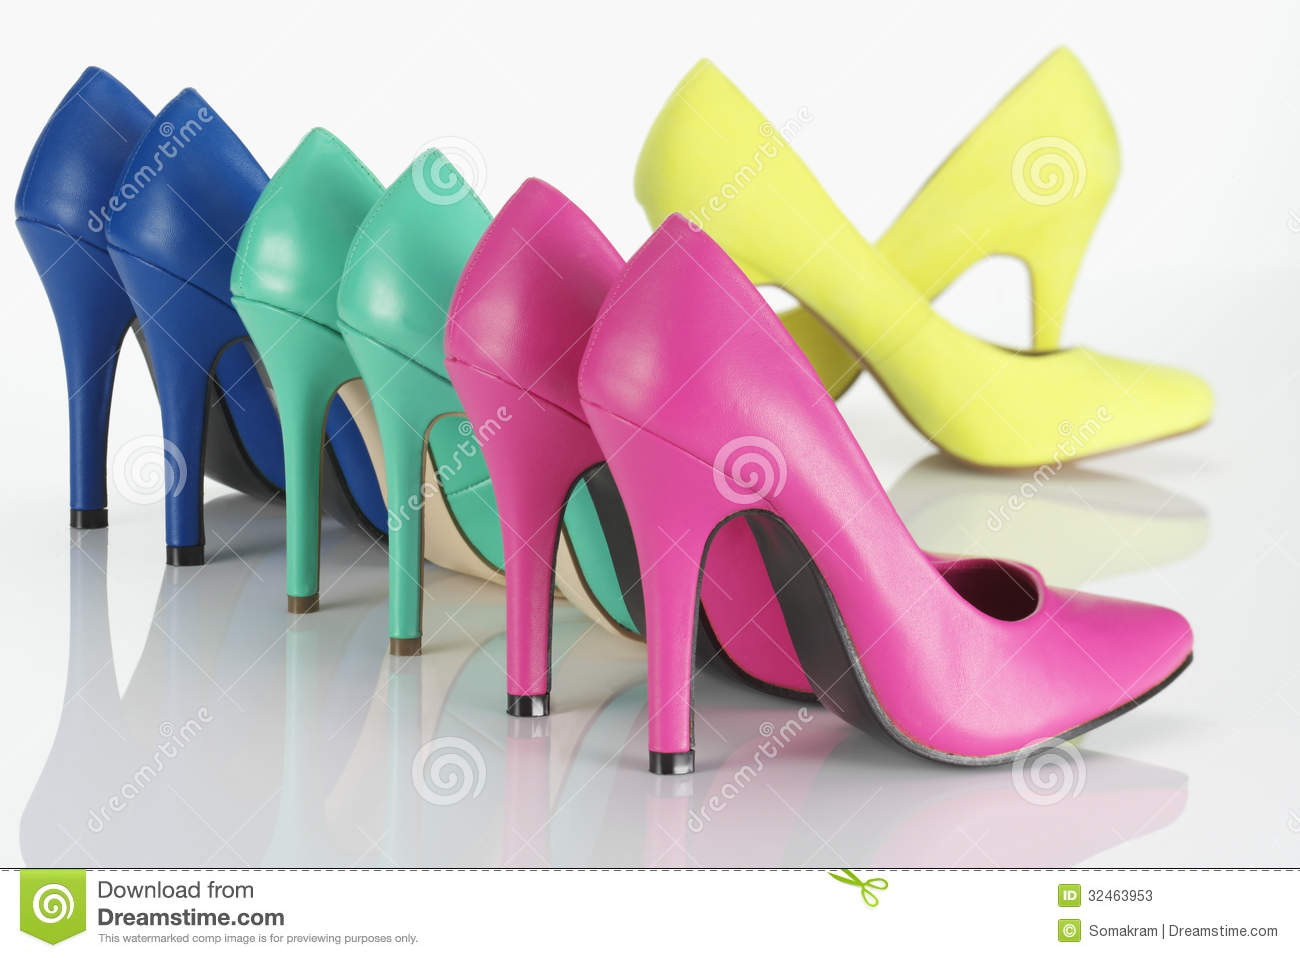 4a18821f238ad High Heels stock image. Image of footwear, dressy, pink - 32463953